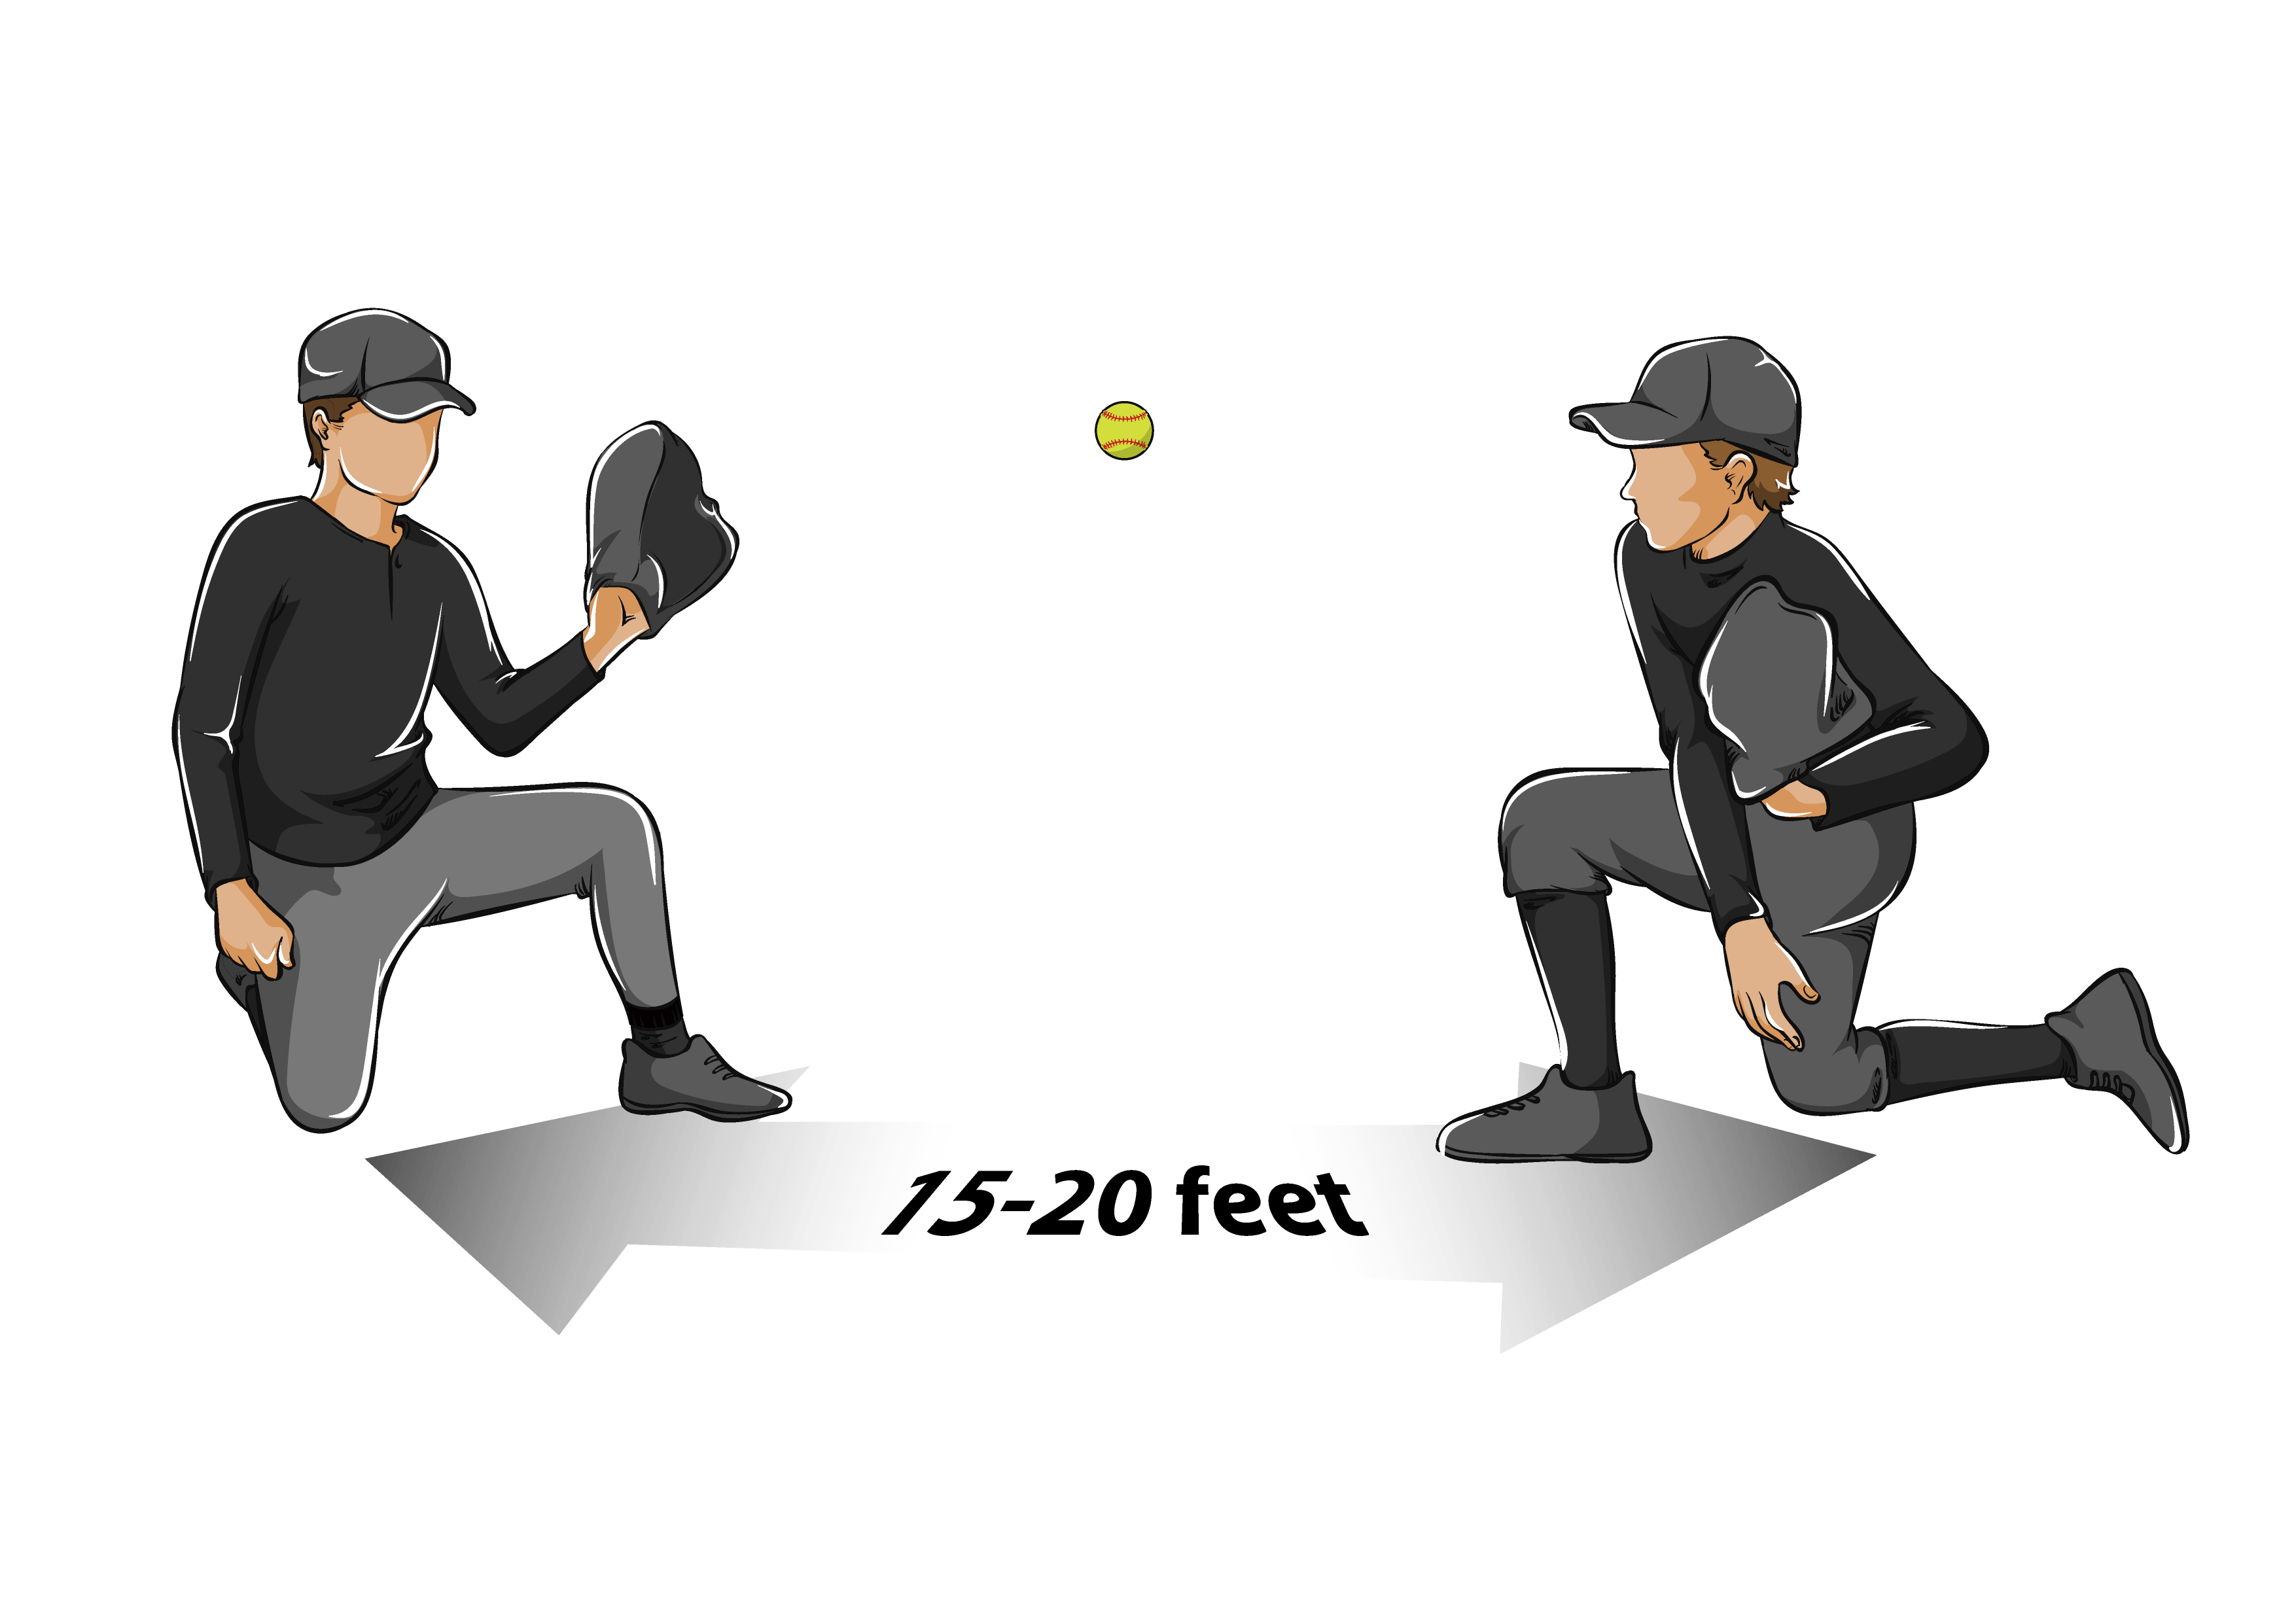 Clipart baseball pitchers grip jpg library download 60 Minute Youth Baseball Practice Plan - Baseball Tutorials jpg library download